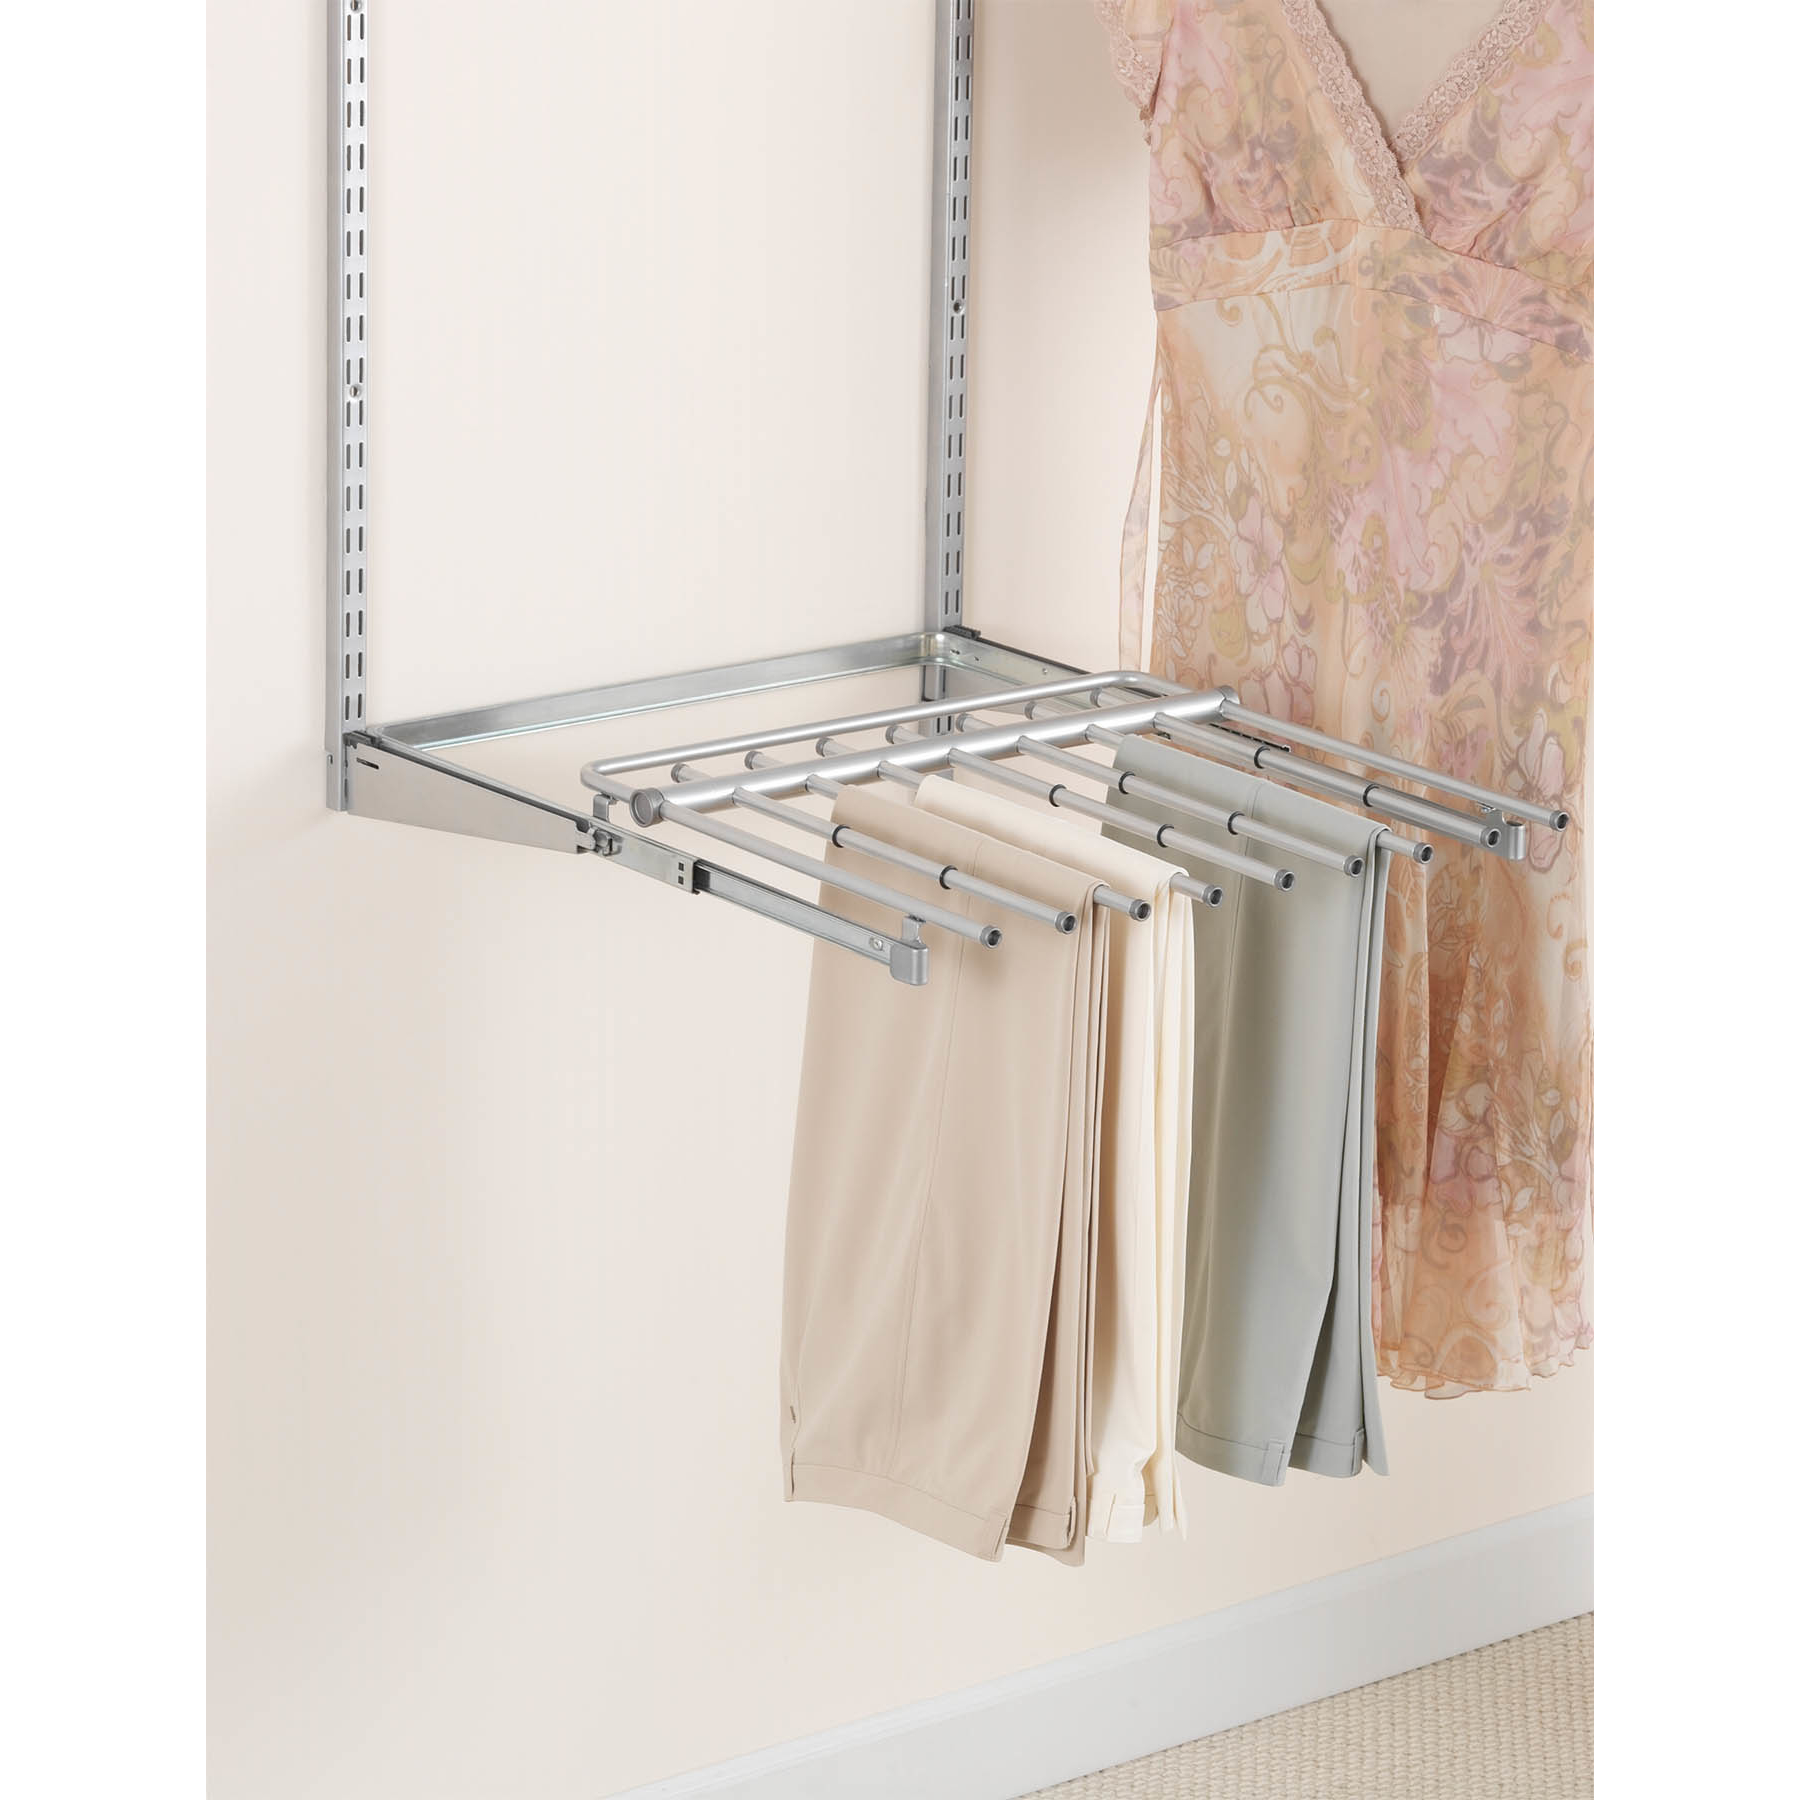 Rubbermaid FG3J0602TITNM Configurations™ Closet Sliding Pants Rack Titanium